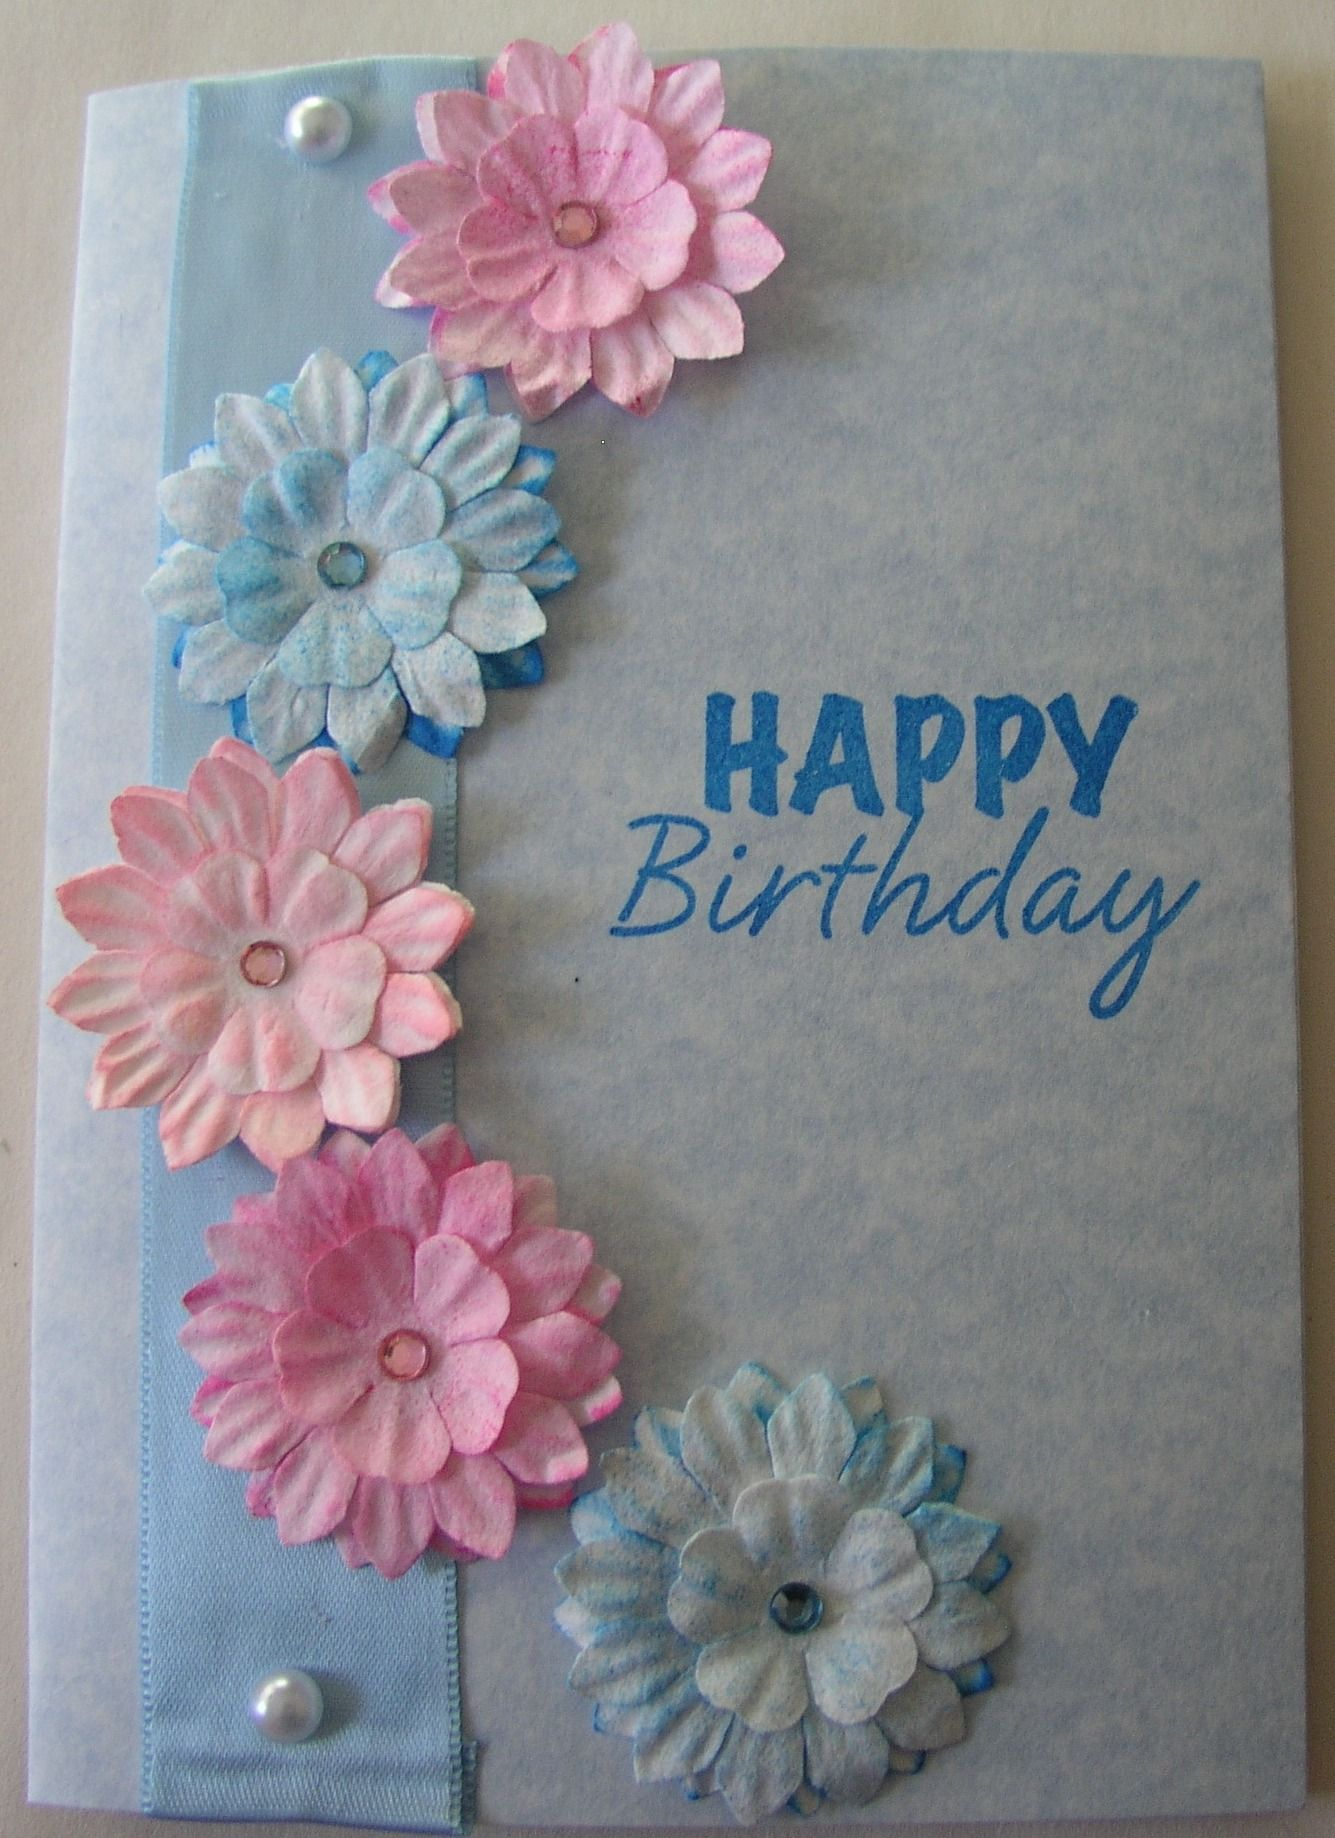 homemade cards making your own greeting cards can be such a